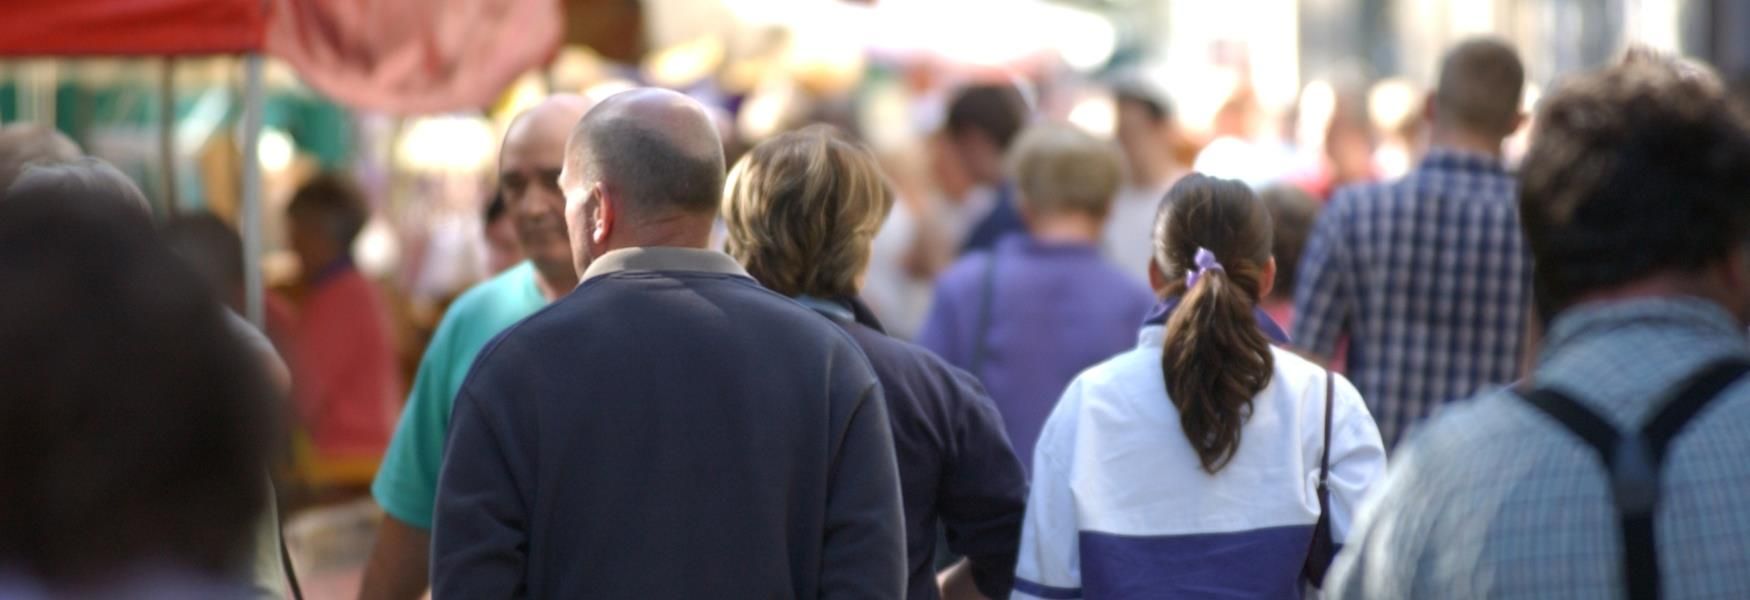 Image of people looking at a variety of street market stalls.